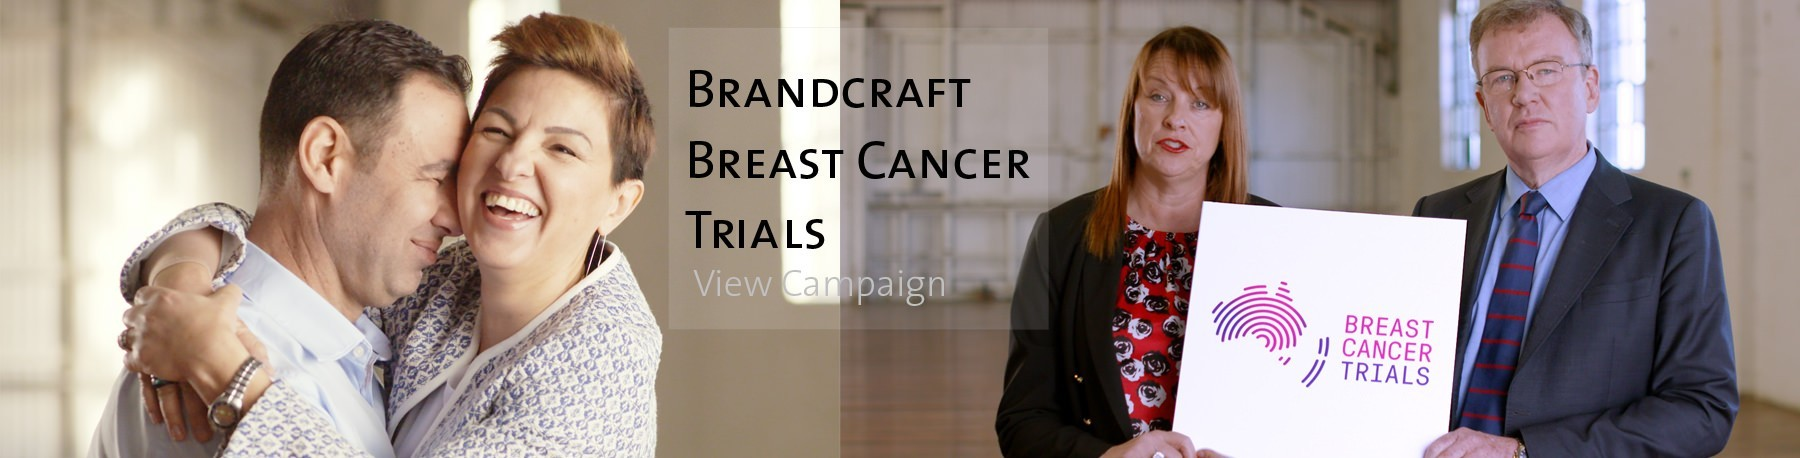 Tell Agency work - Breast Cancer Trials